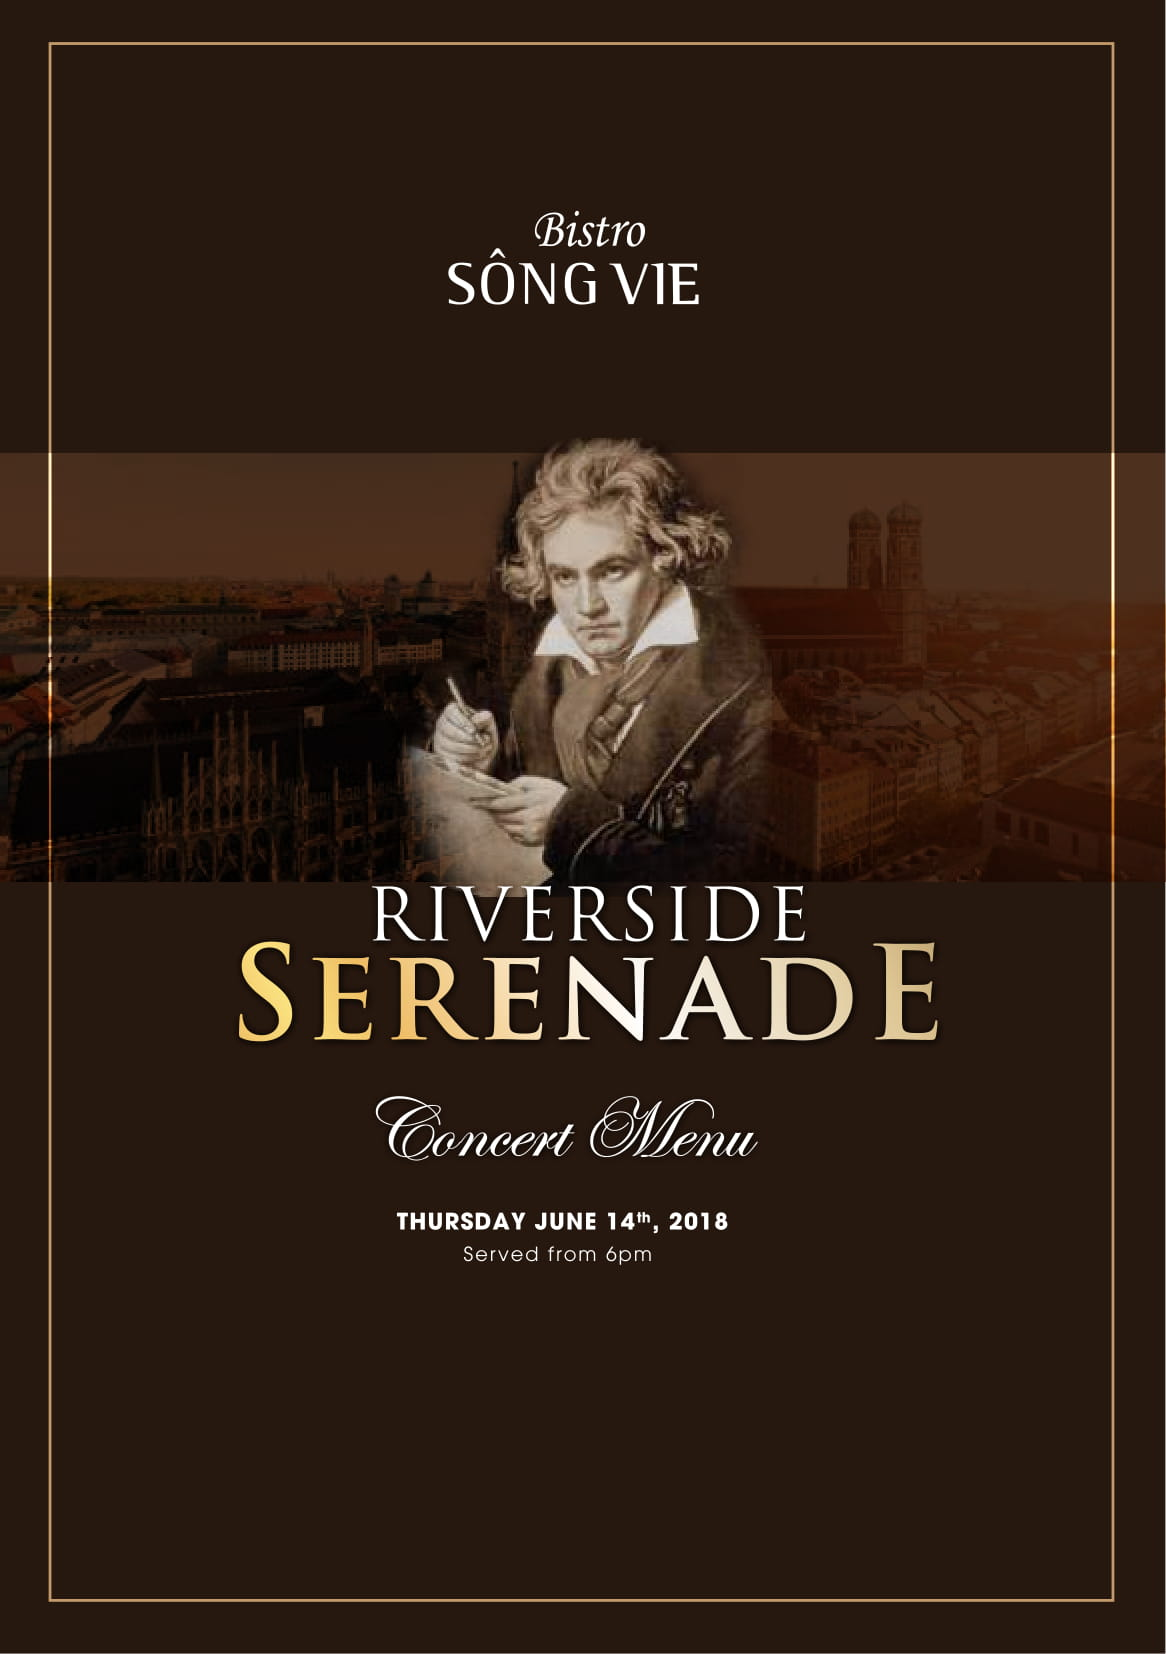 serenade concert menu at Bistro Song Vie - Villa Song Saigon